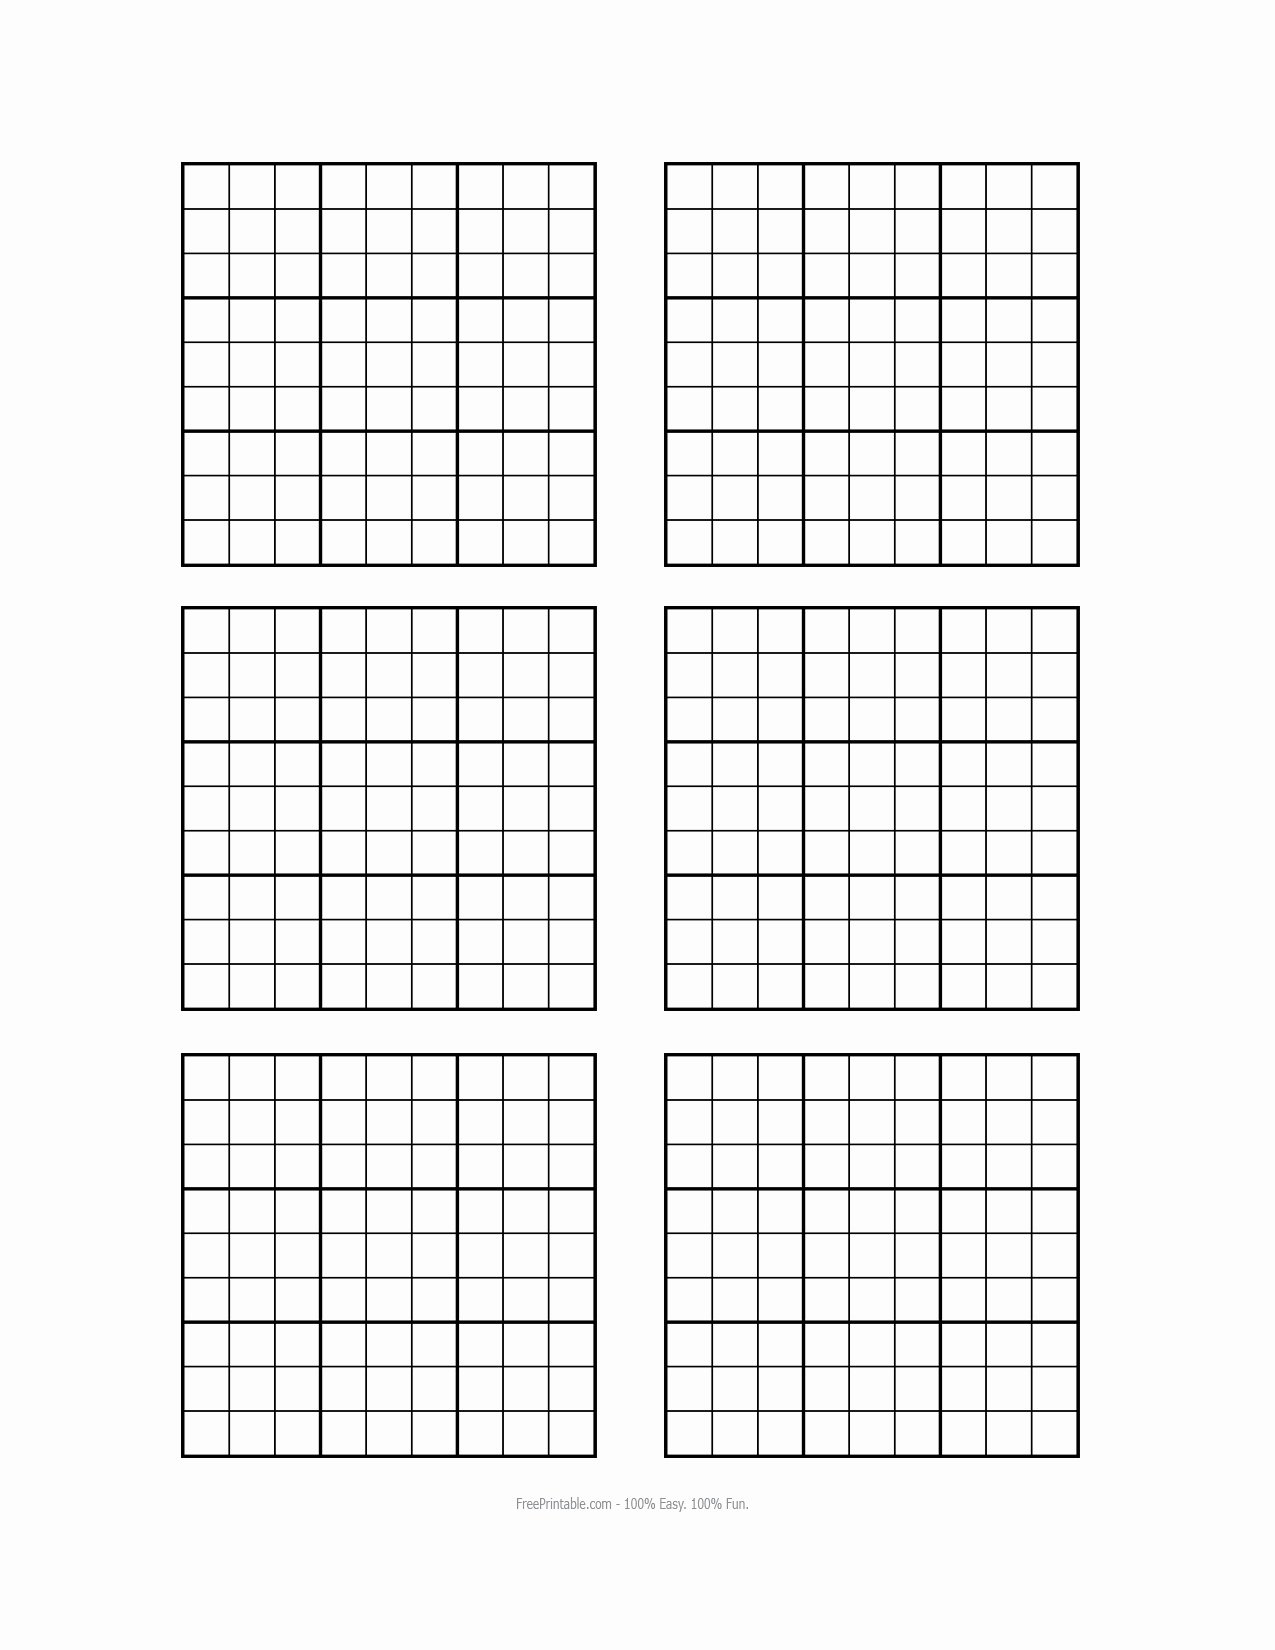 Blank Sudoku Grid Printable Elegant Other Printable Gallery Category Page 231